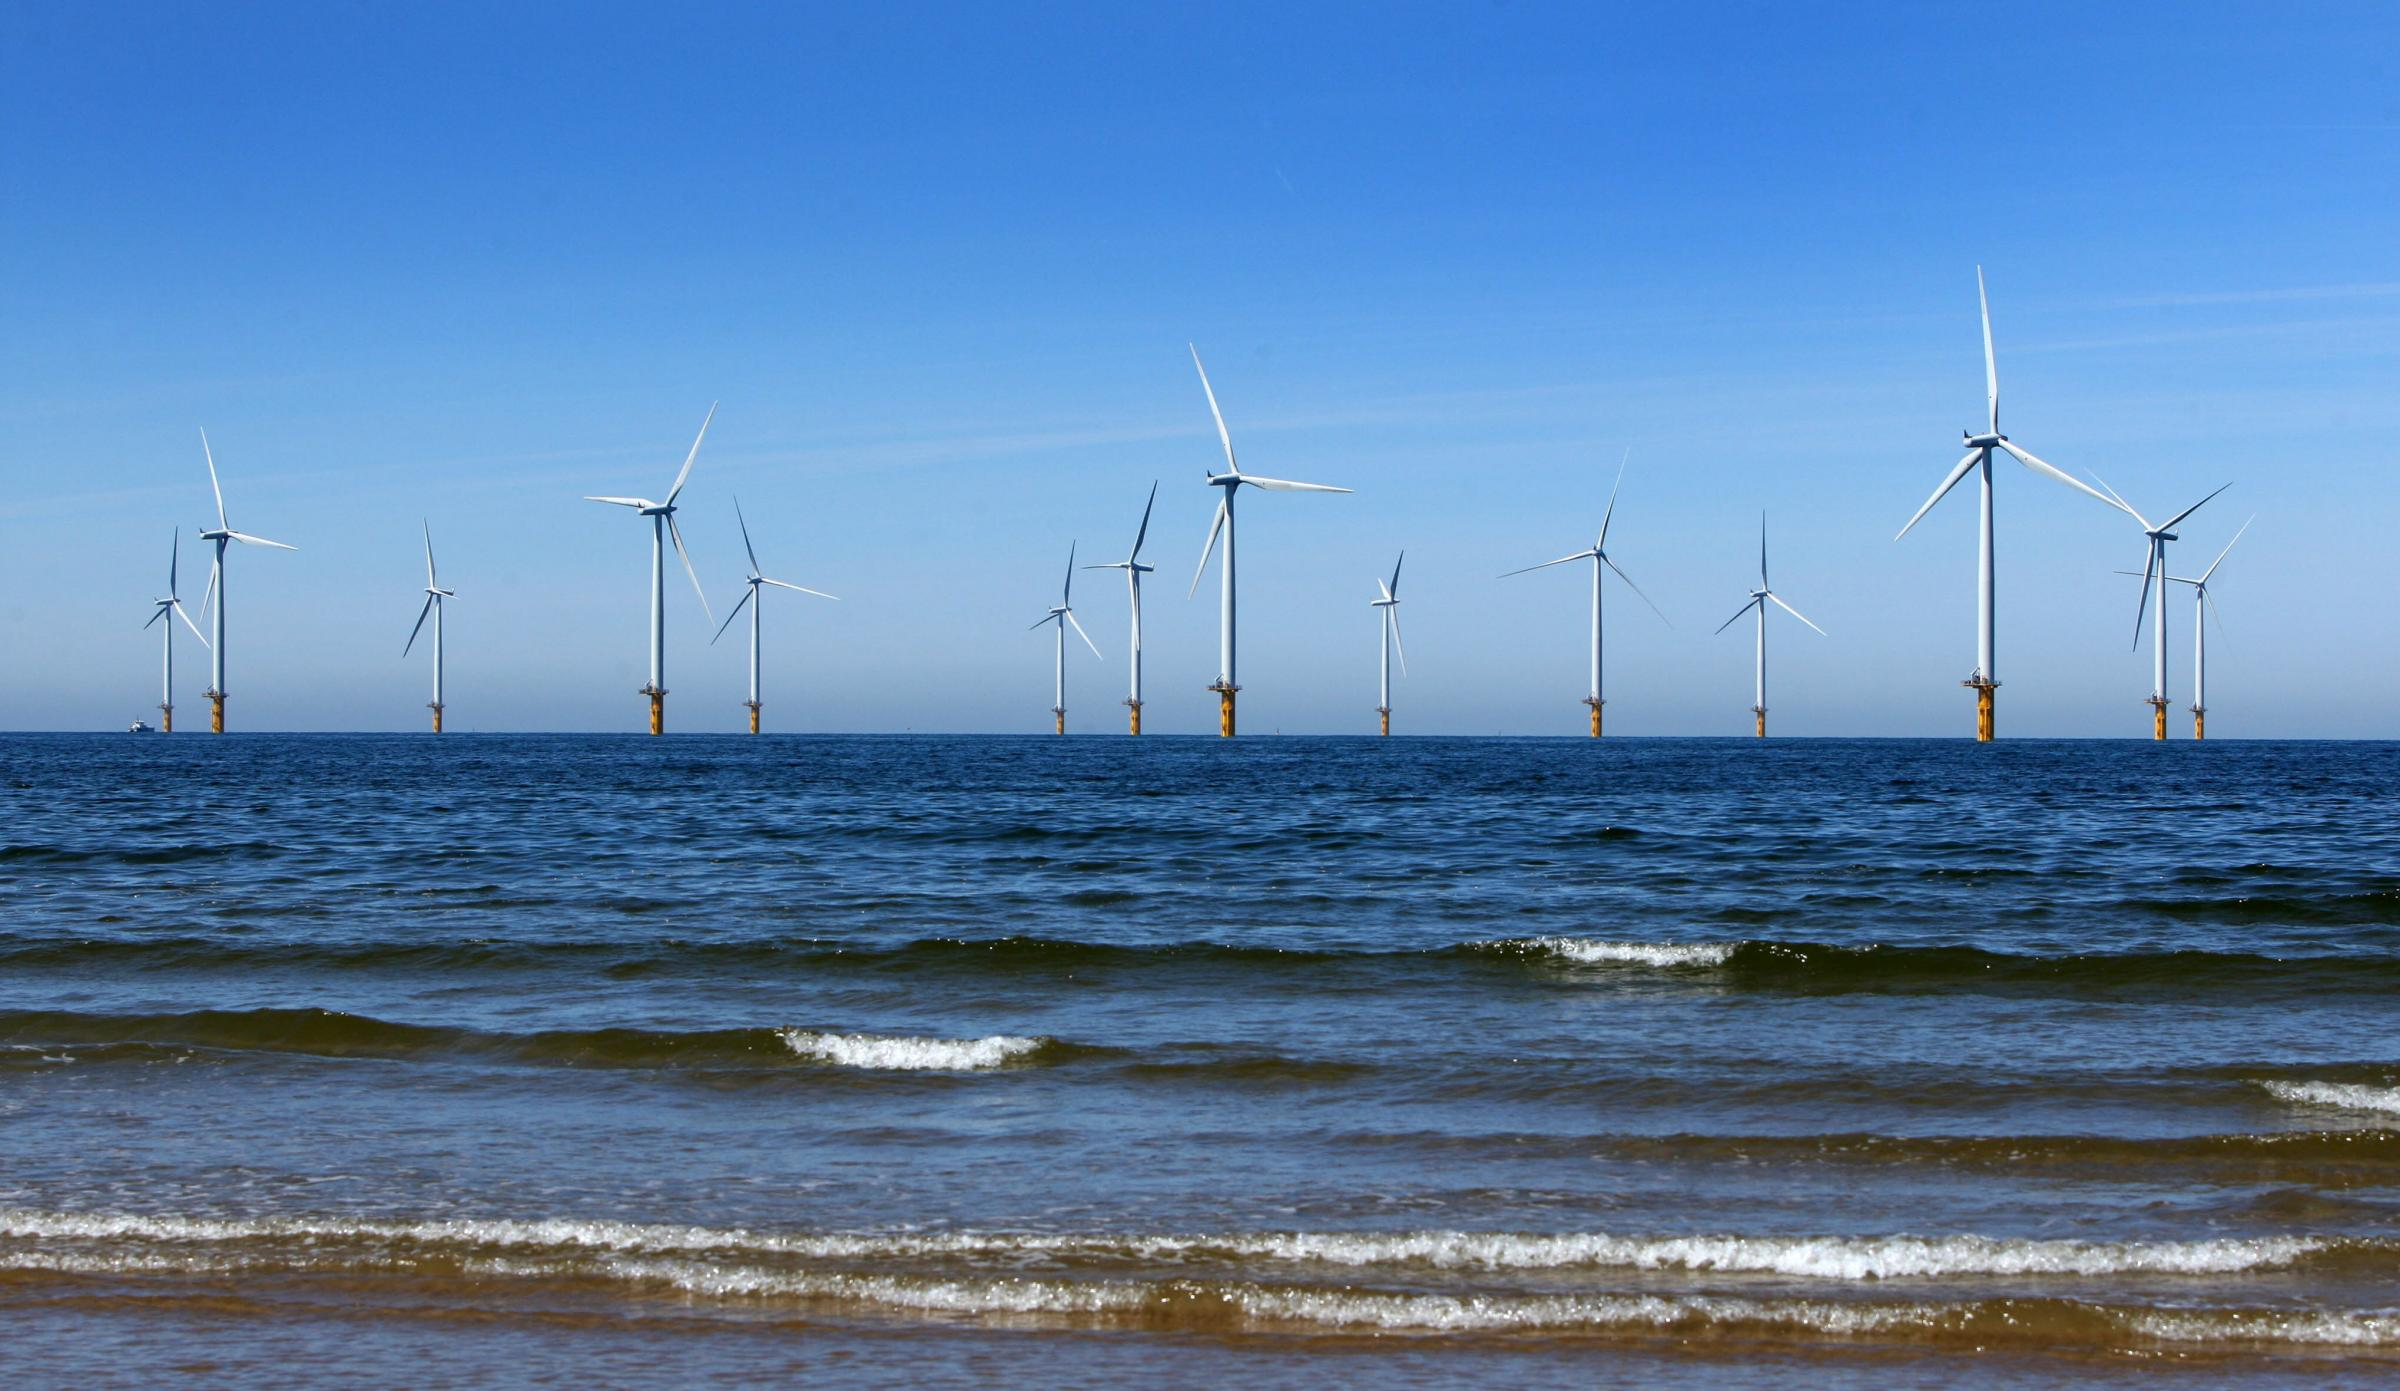 The Teesside wind farm, off the coast of Redcar